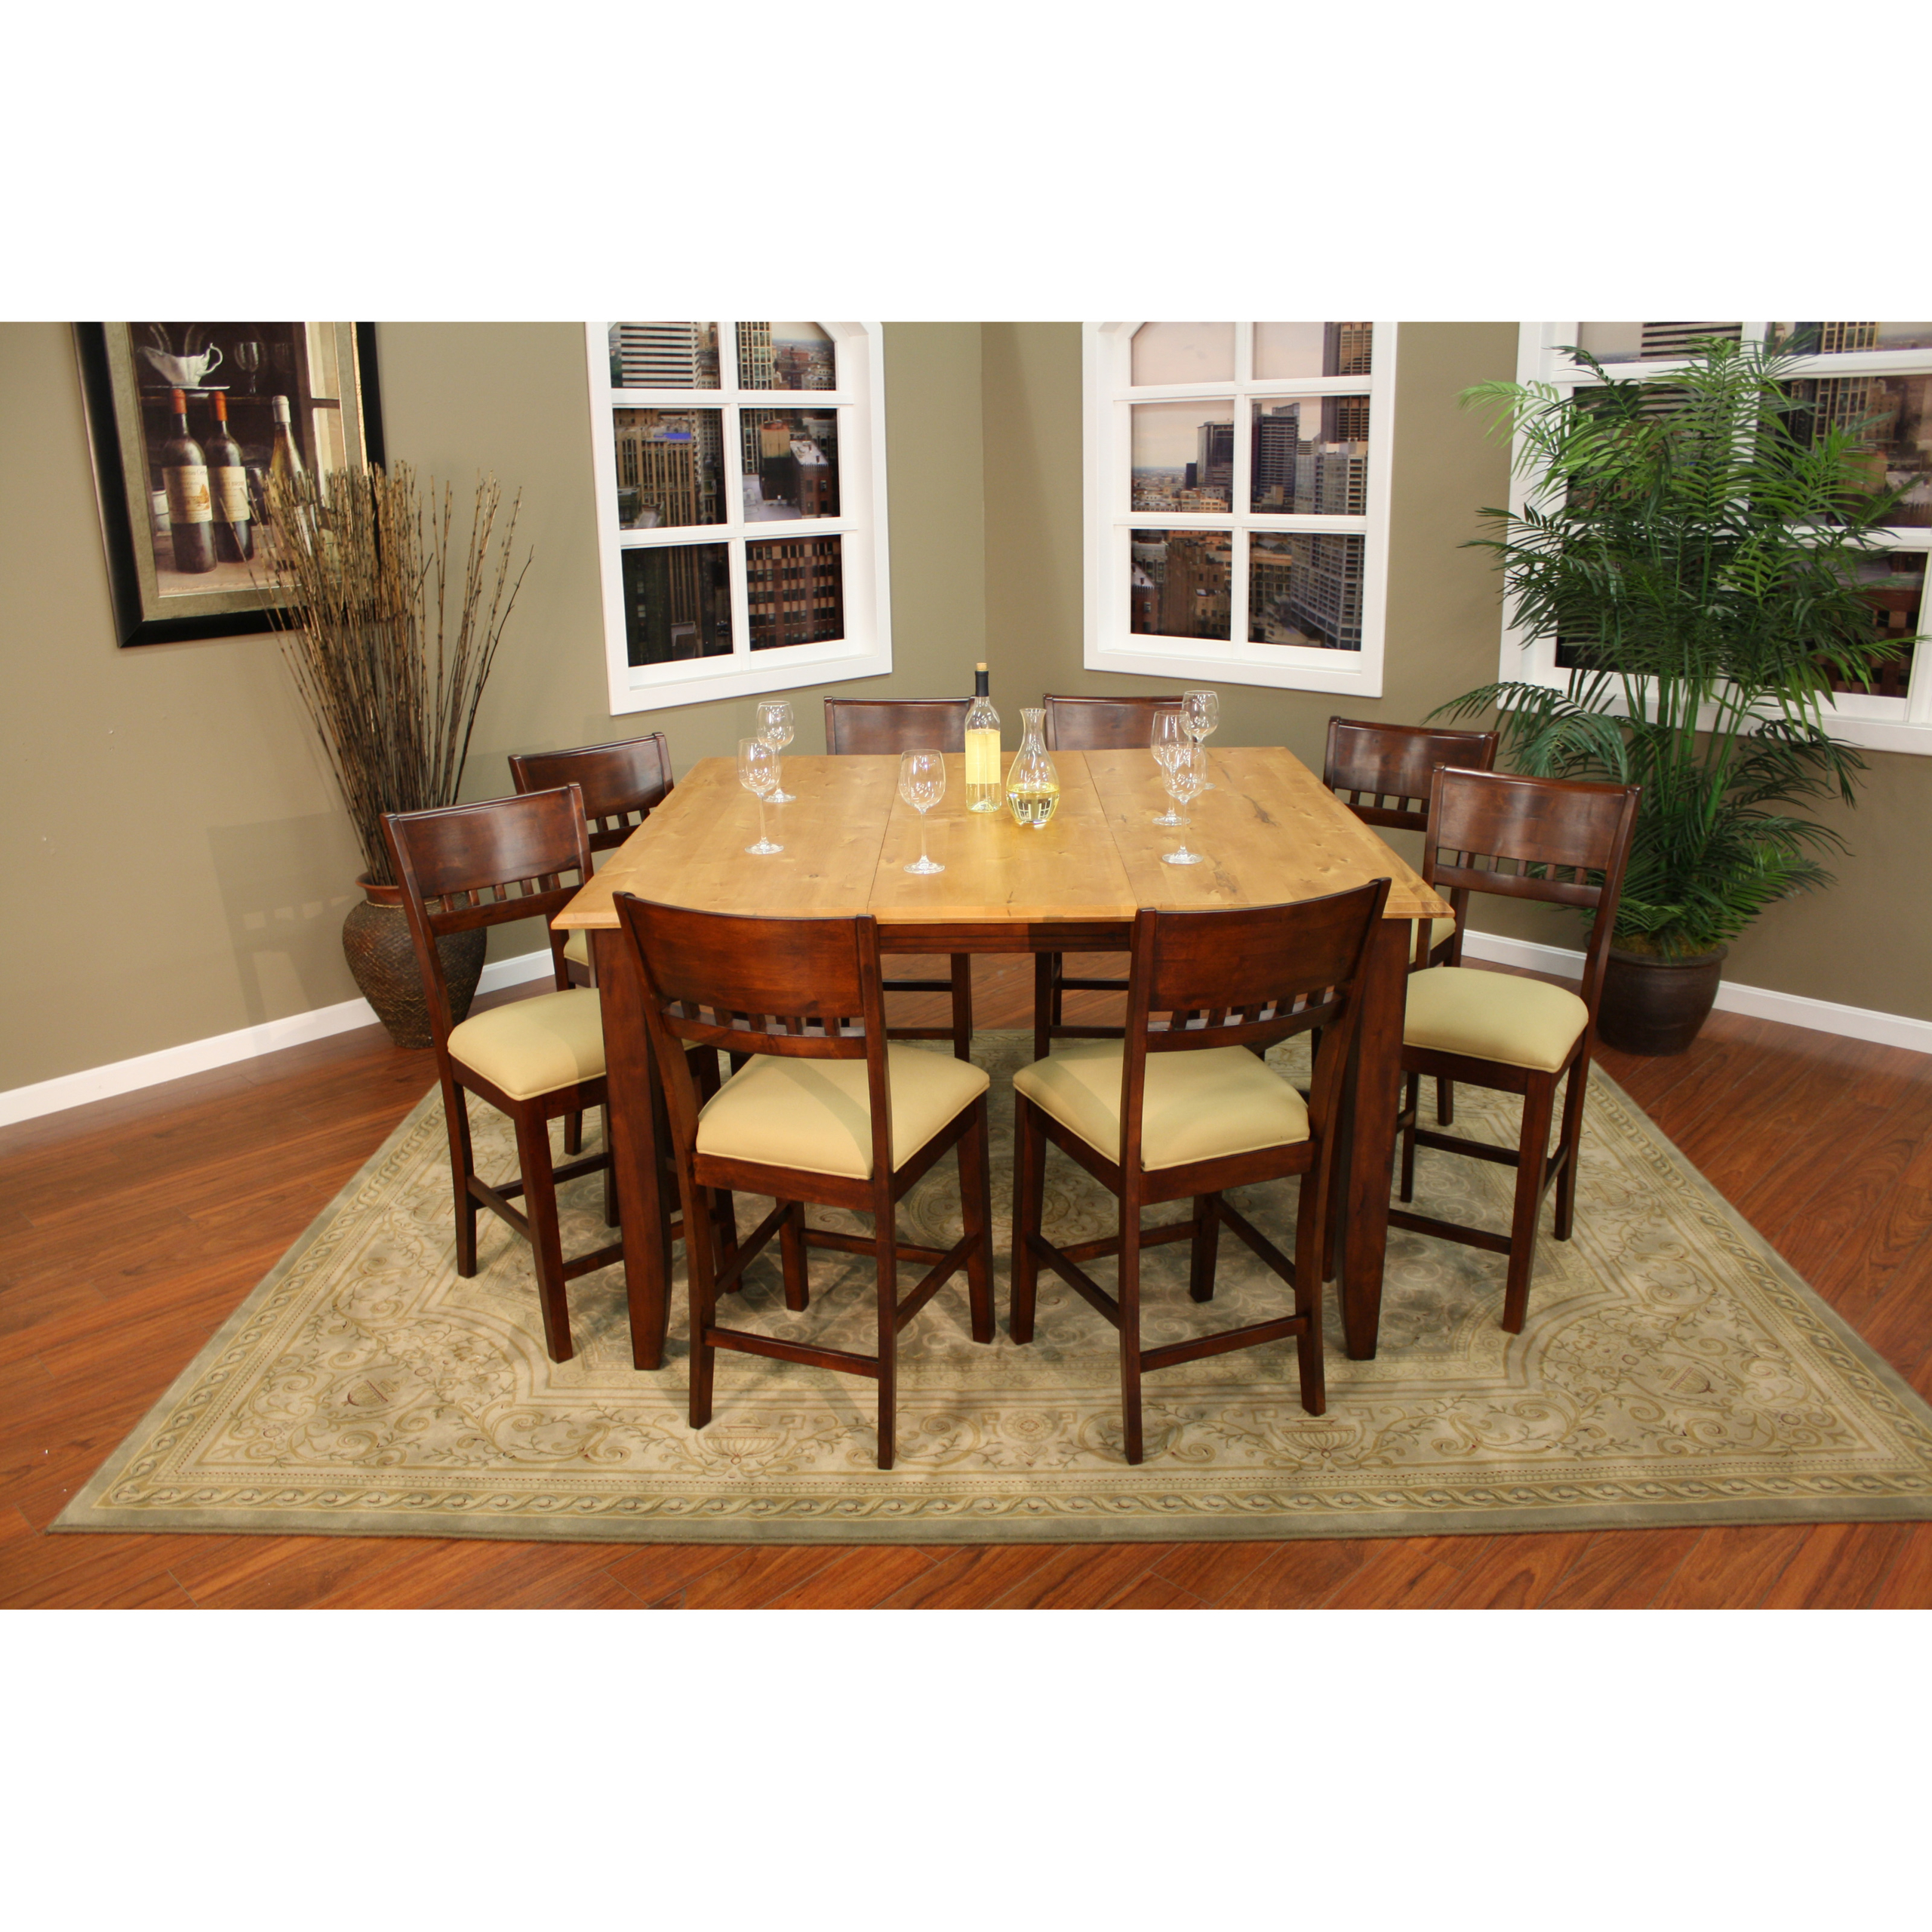 Lovely Light Wood Counter Height Dining Sets 5